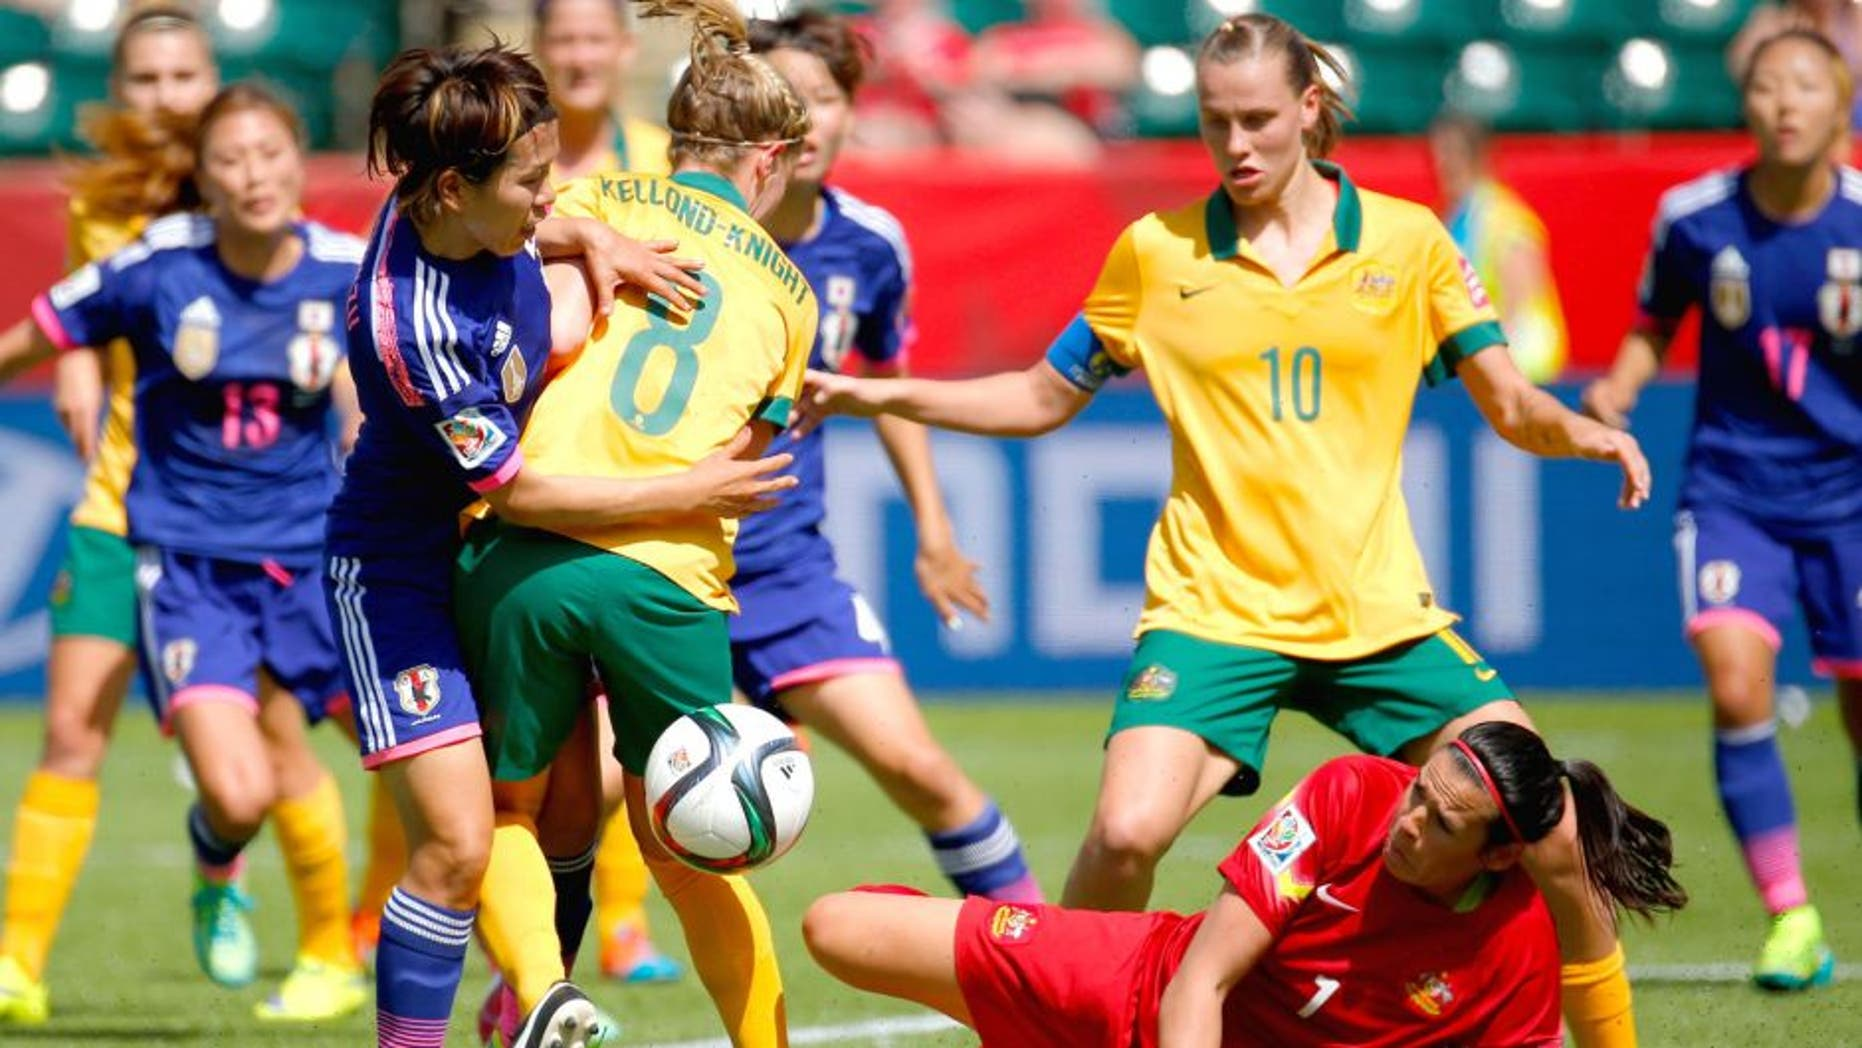 EDMONTON, AB - JUNE 27: Elise Kellond-Knight #8 defends as goalkeeper Lydia Williams #1 of Australia attempts to save the ball against Azusa Iwashimizu #3 of Japan during the FIFA Women's World Cup Canada 2015 Quarter Final match between Australia and Japan at Commonwealth Stadium on June 27, 2015 in Edmonton, Canada. (Photo by Kevin C. Cox/Getty Images)